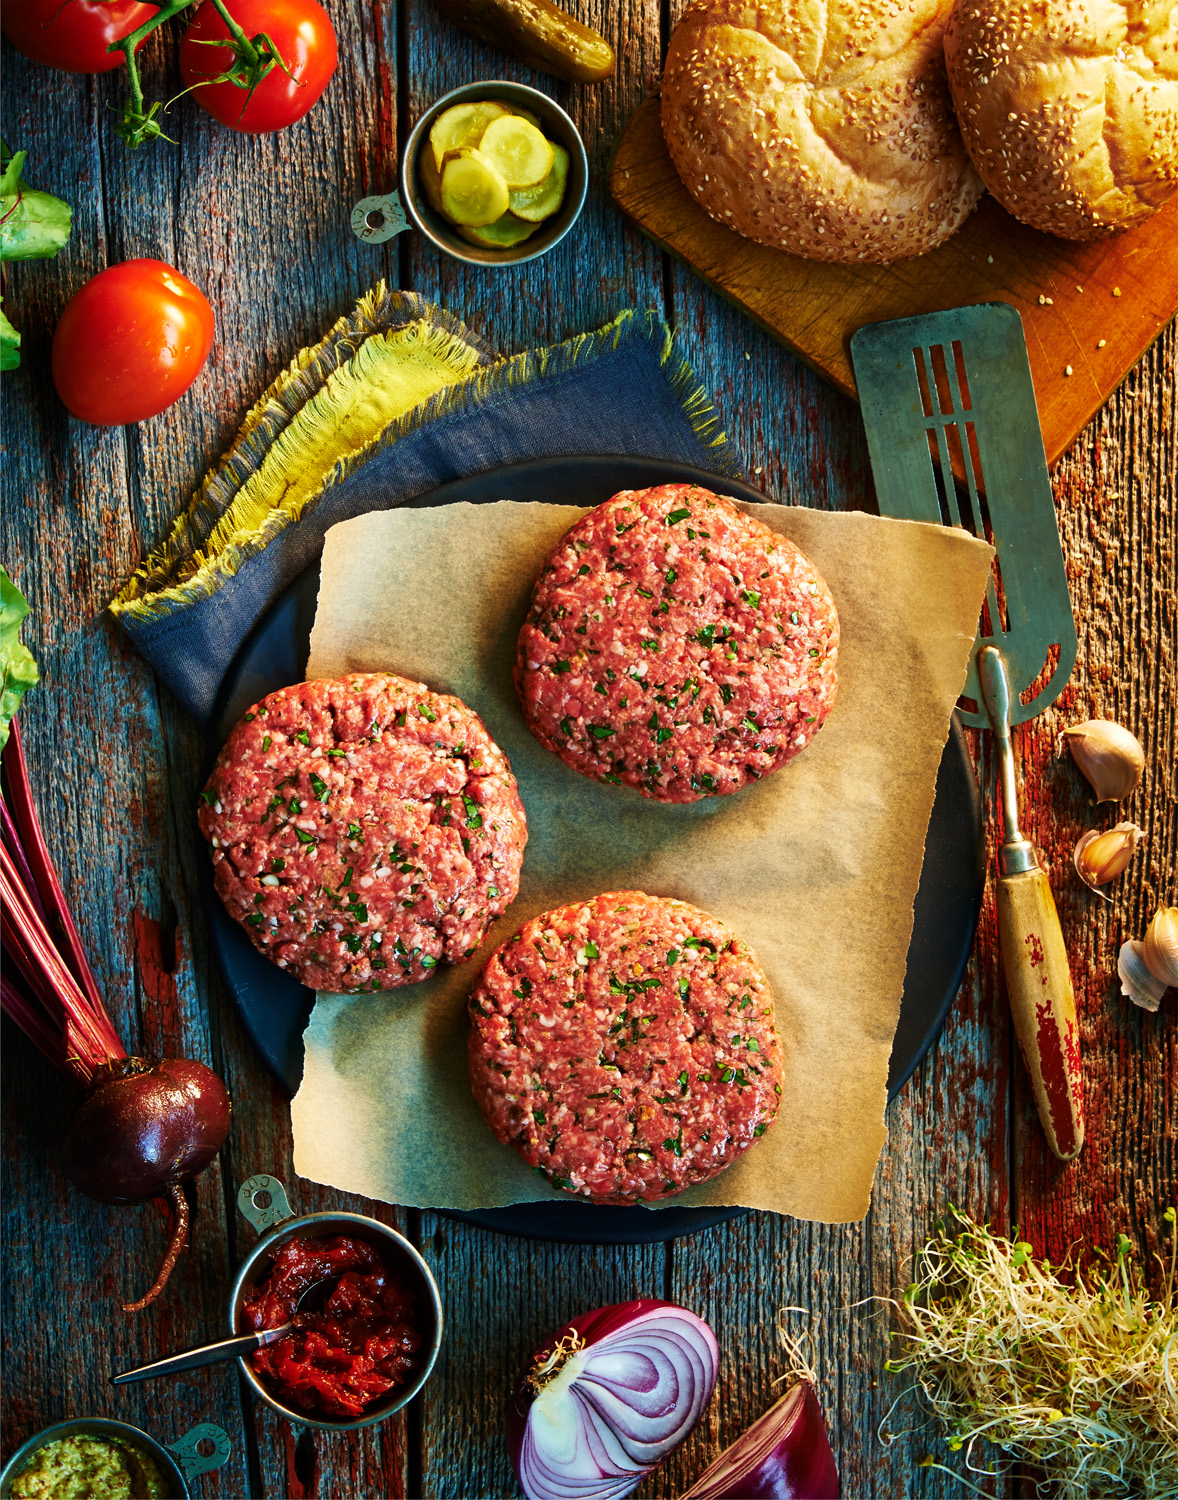 BurgerIngredients_02